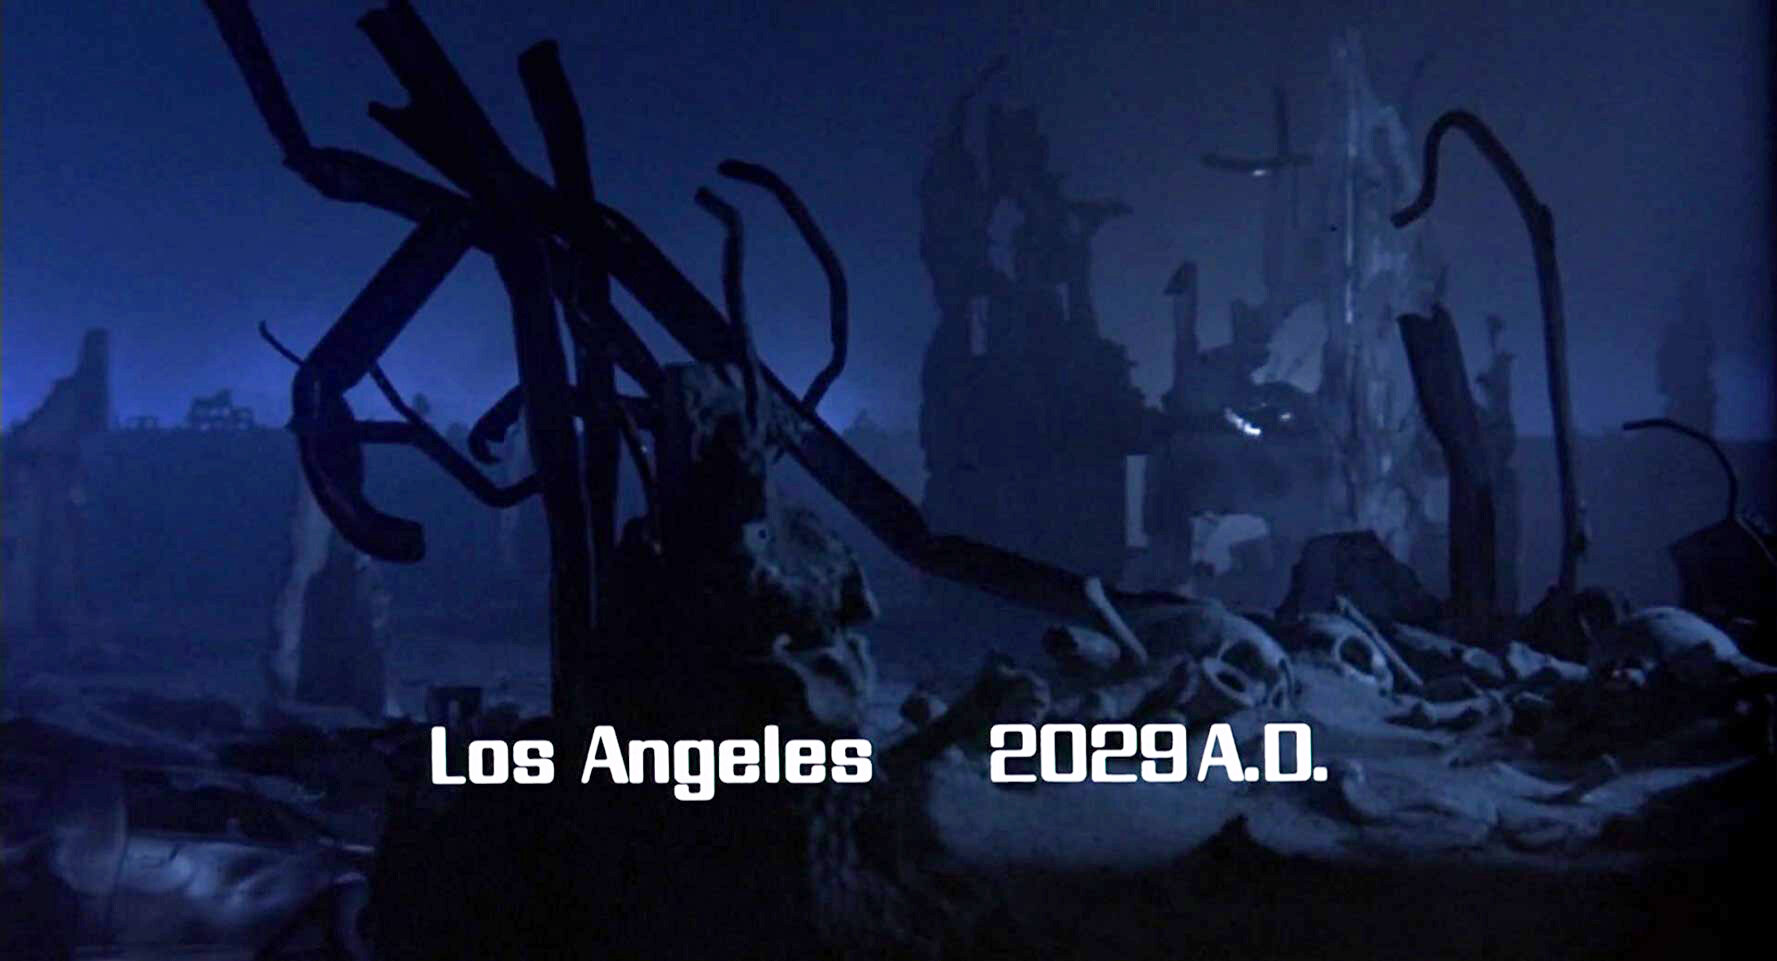 Sub-title during Future War sequence.